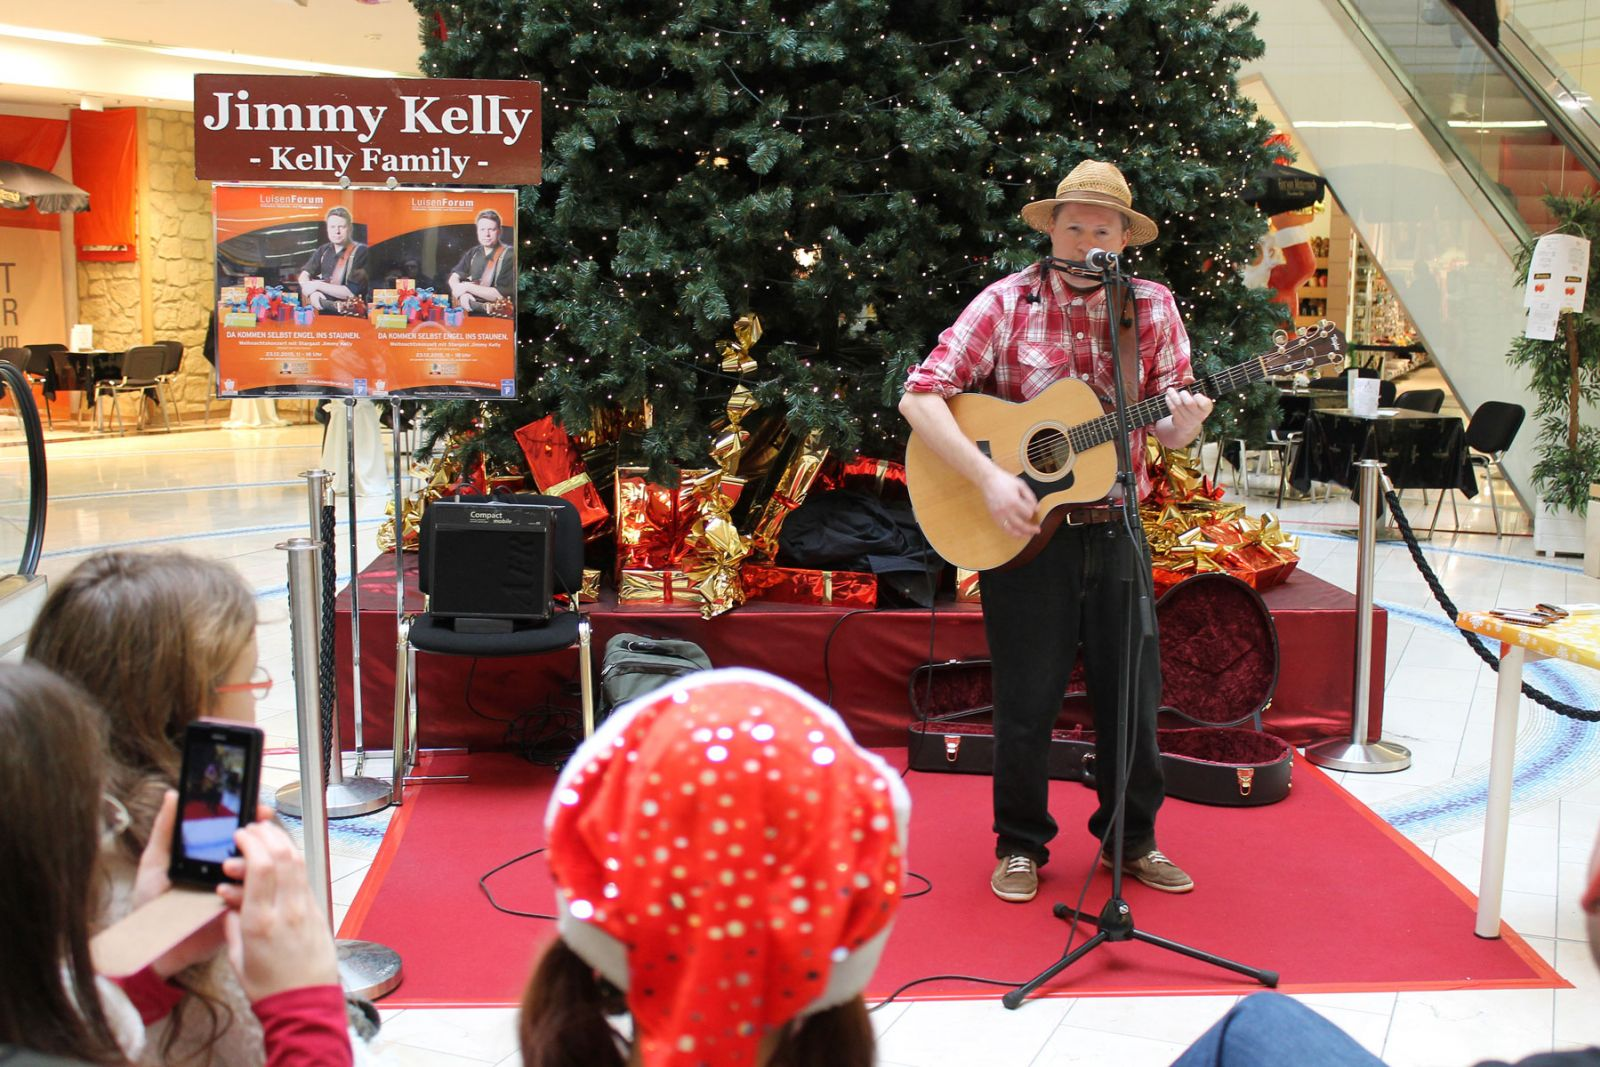 Jimmy Kelly (Kelly Family)